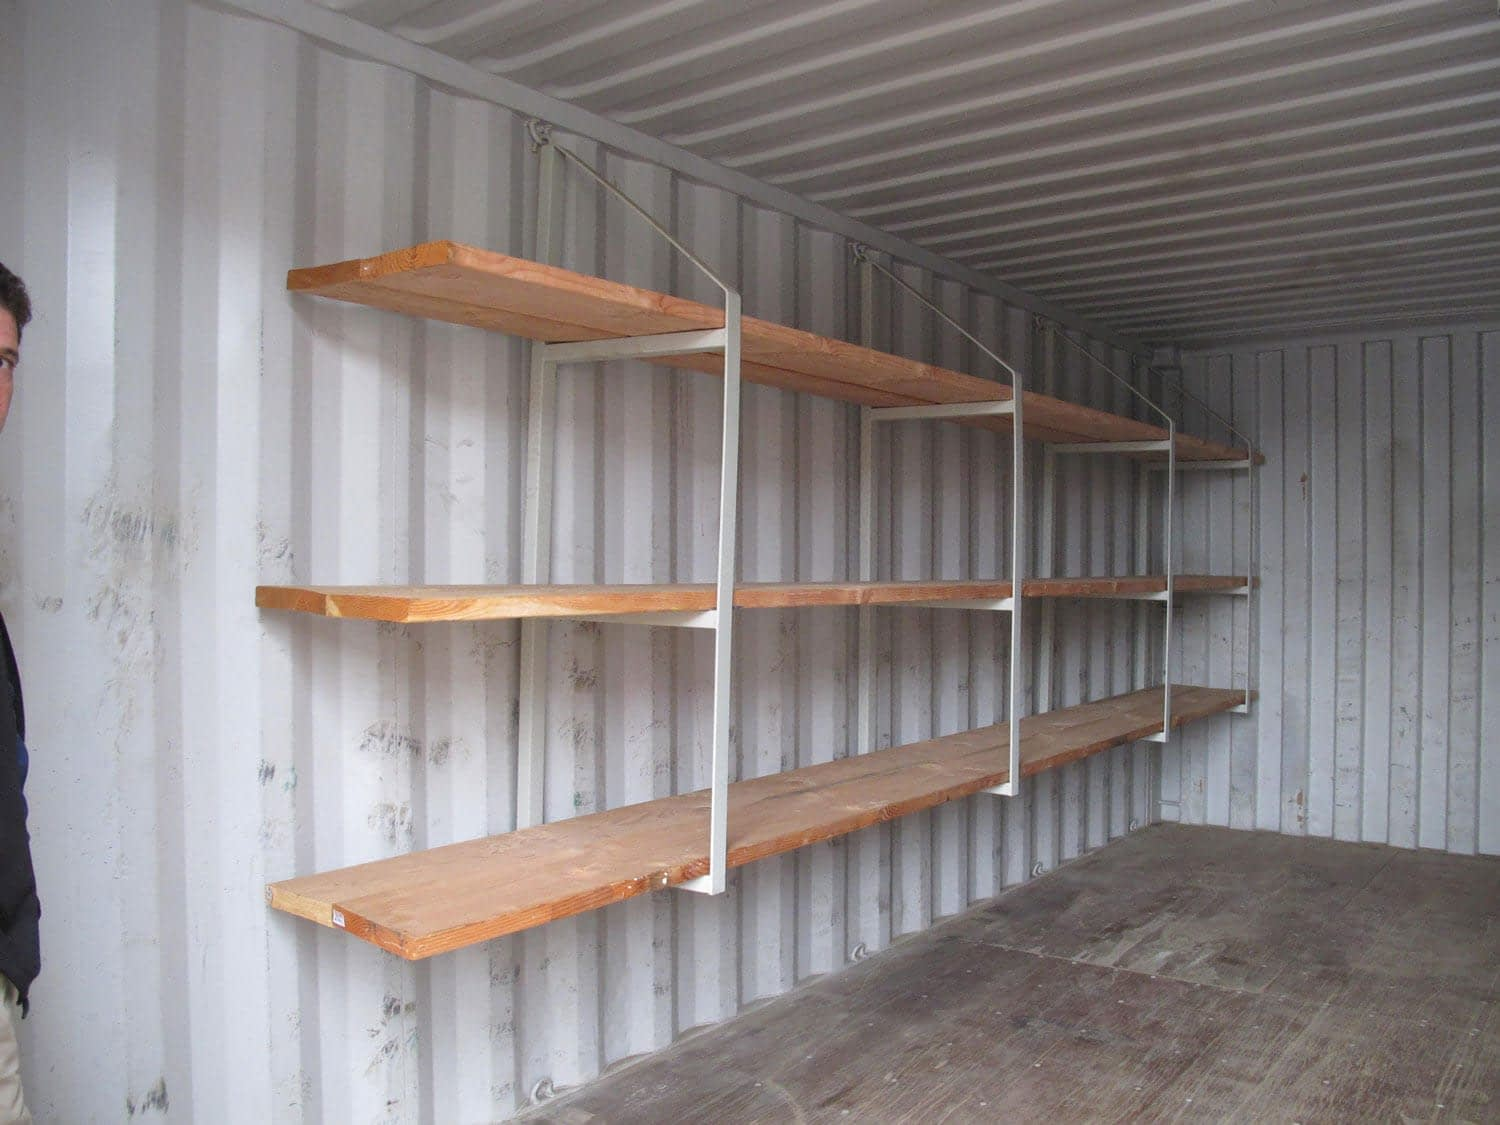 TRS has an economical shelving system that hangs from the D-rings